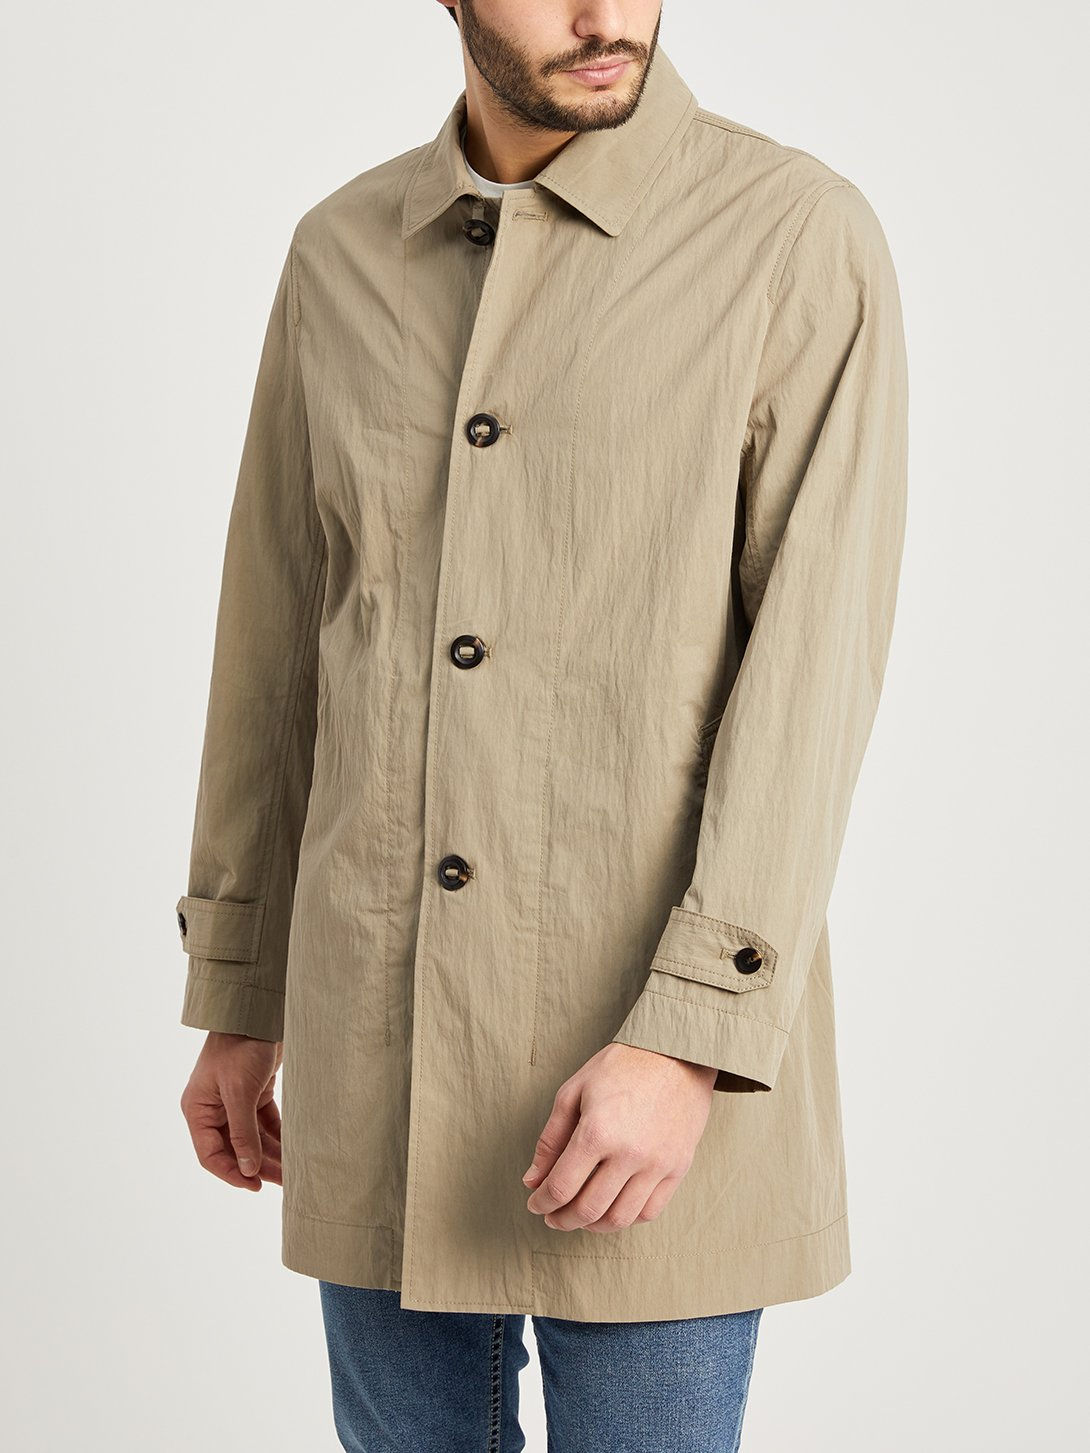 CEMENT GREY jackets for men marion trench ons clothing